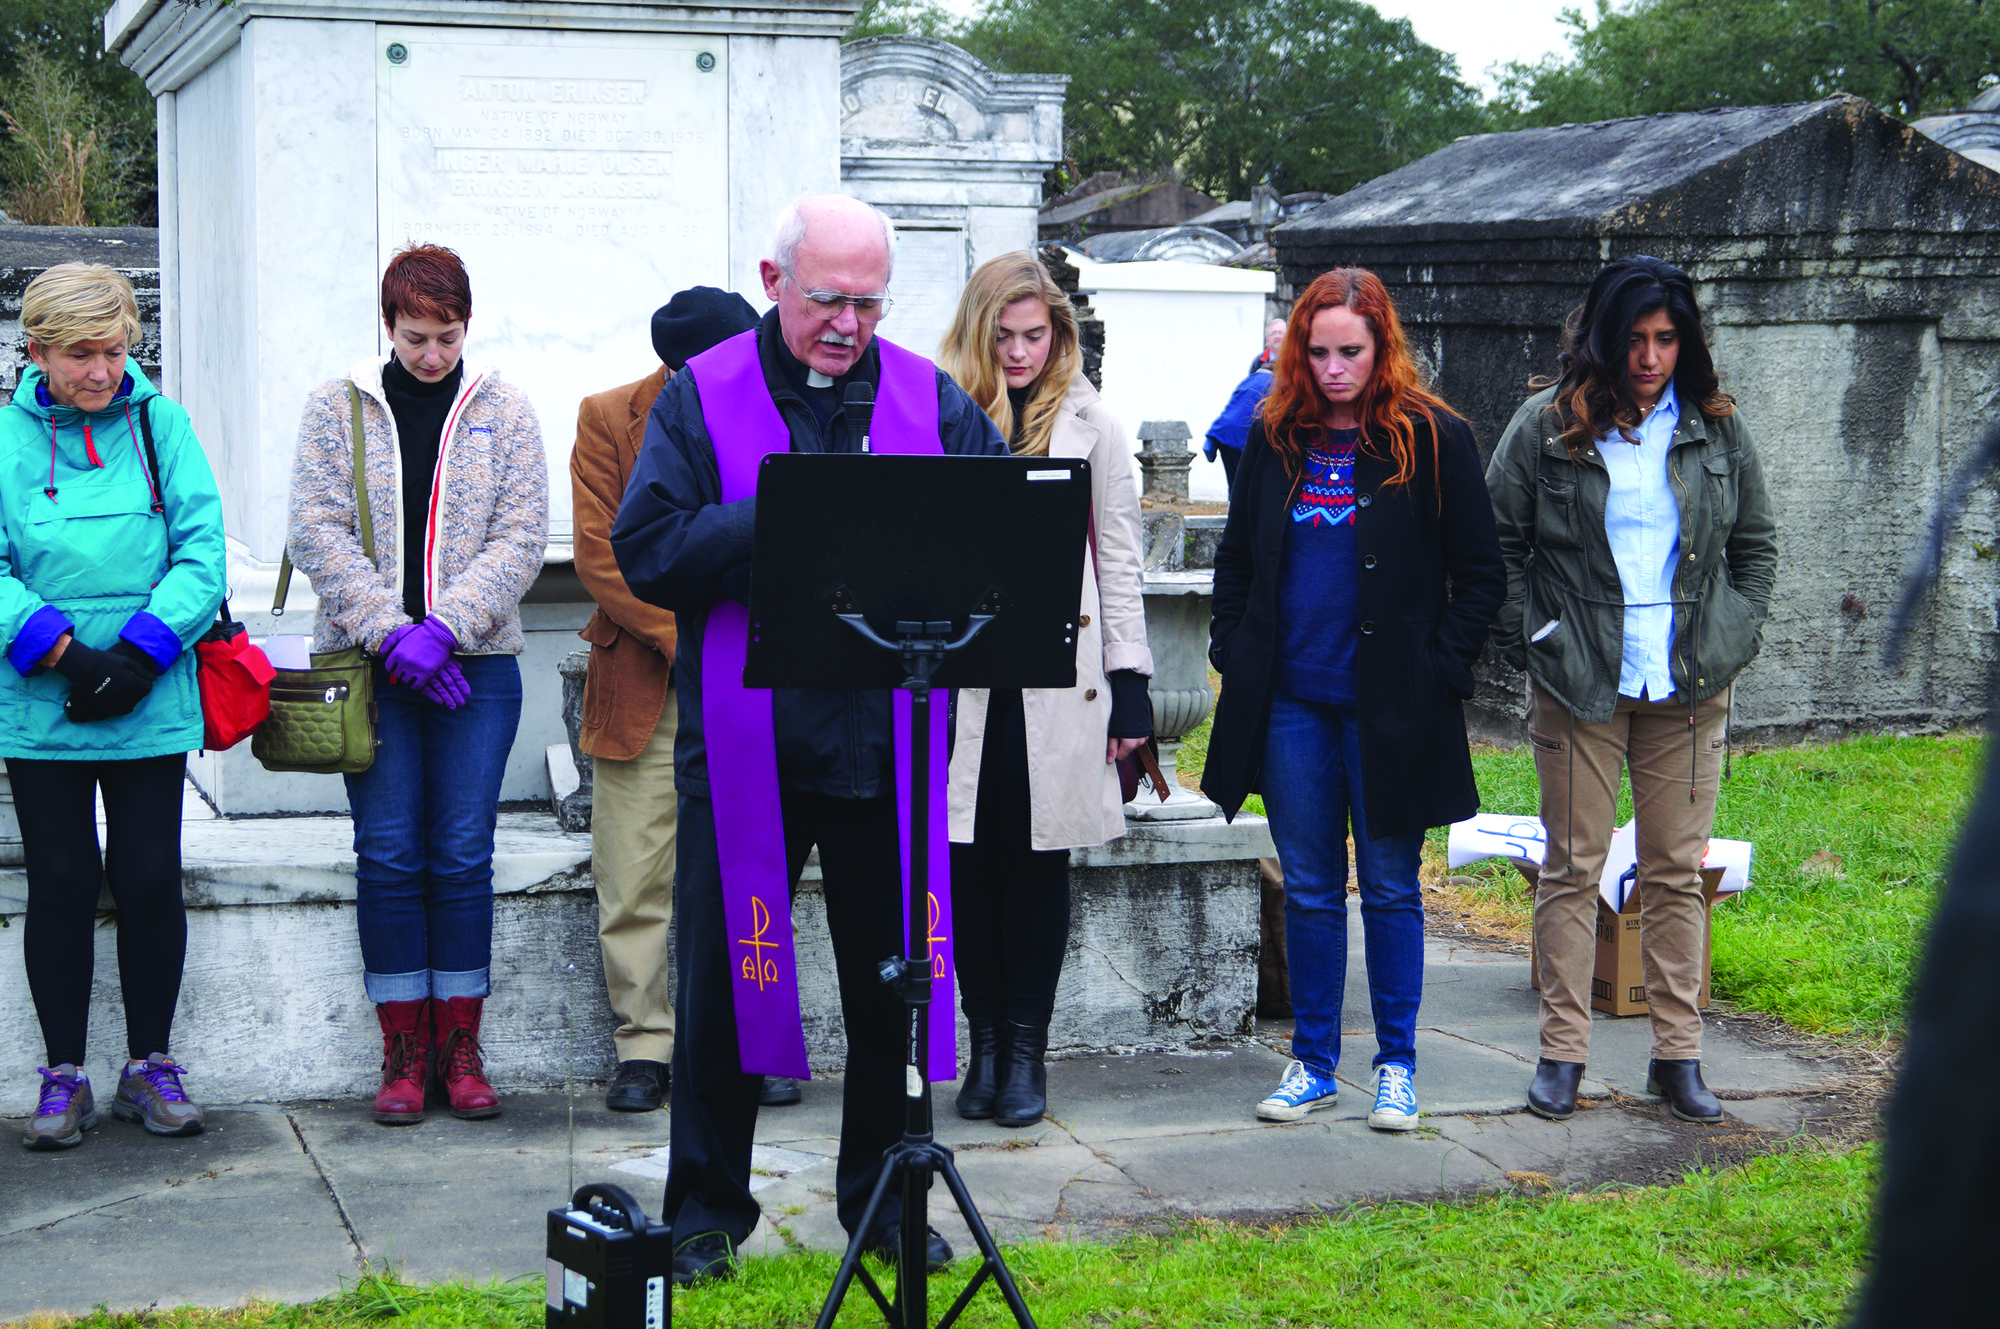 The Rev. Fred Kammer, S.J., director of the Jesuit Social Research Institute, leads a group of protestors in prayer at Lafayette Cemetery No. 1 on Jan. 28. The protest was against repealing the Affordable Care Act and Medicaid expansion in Louisiana. Photo credit: Colleen Dulle